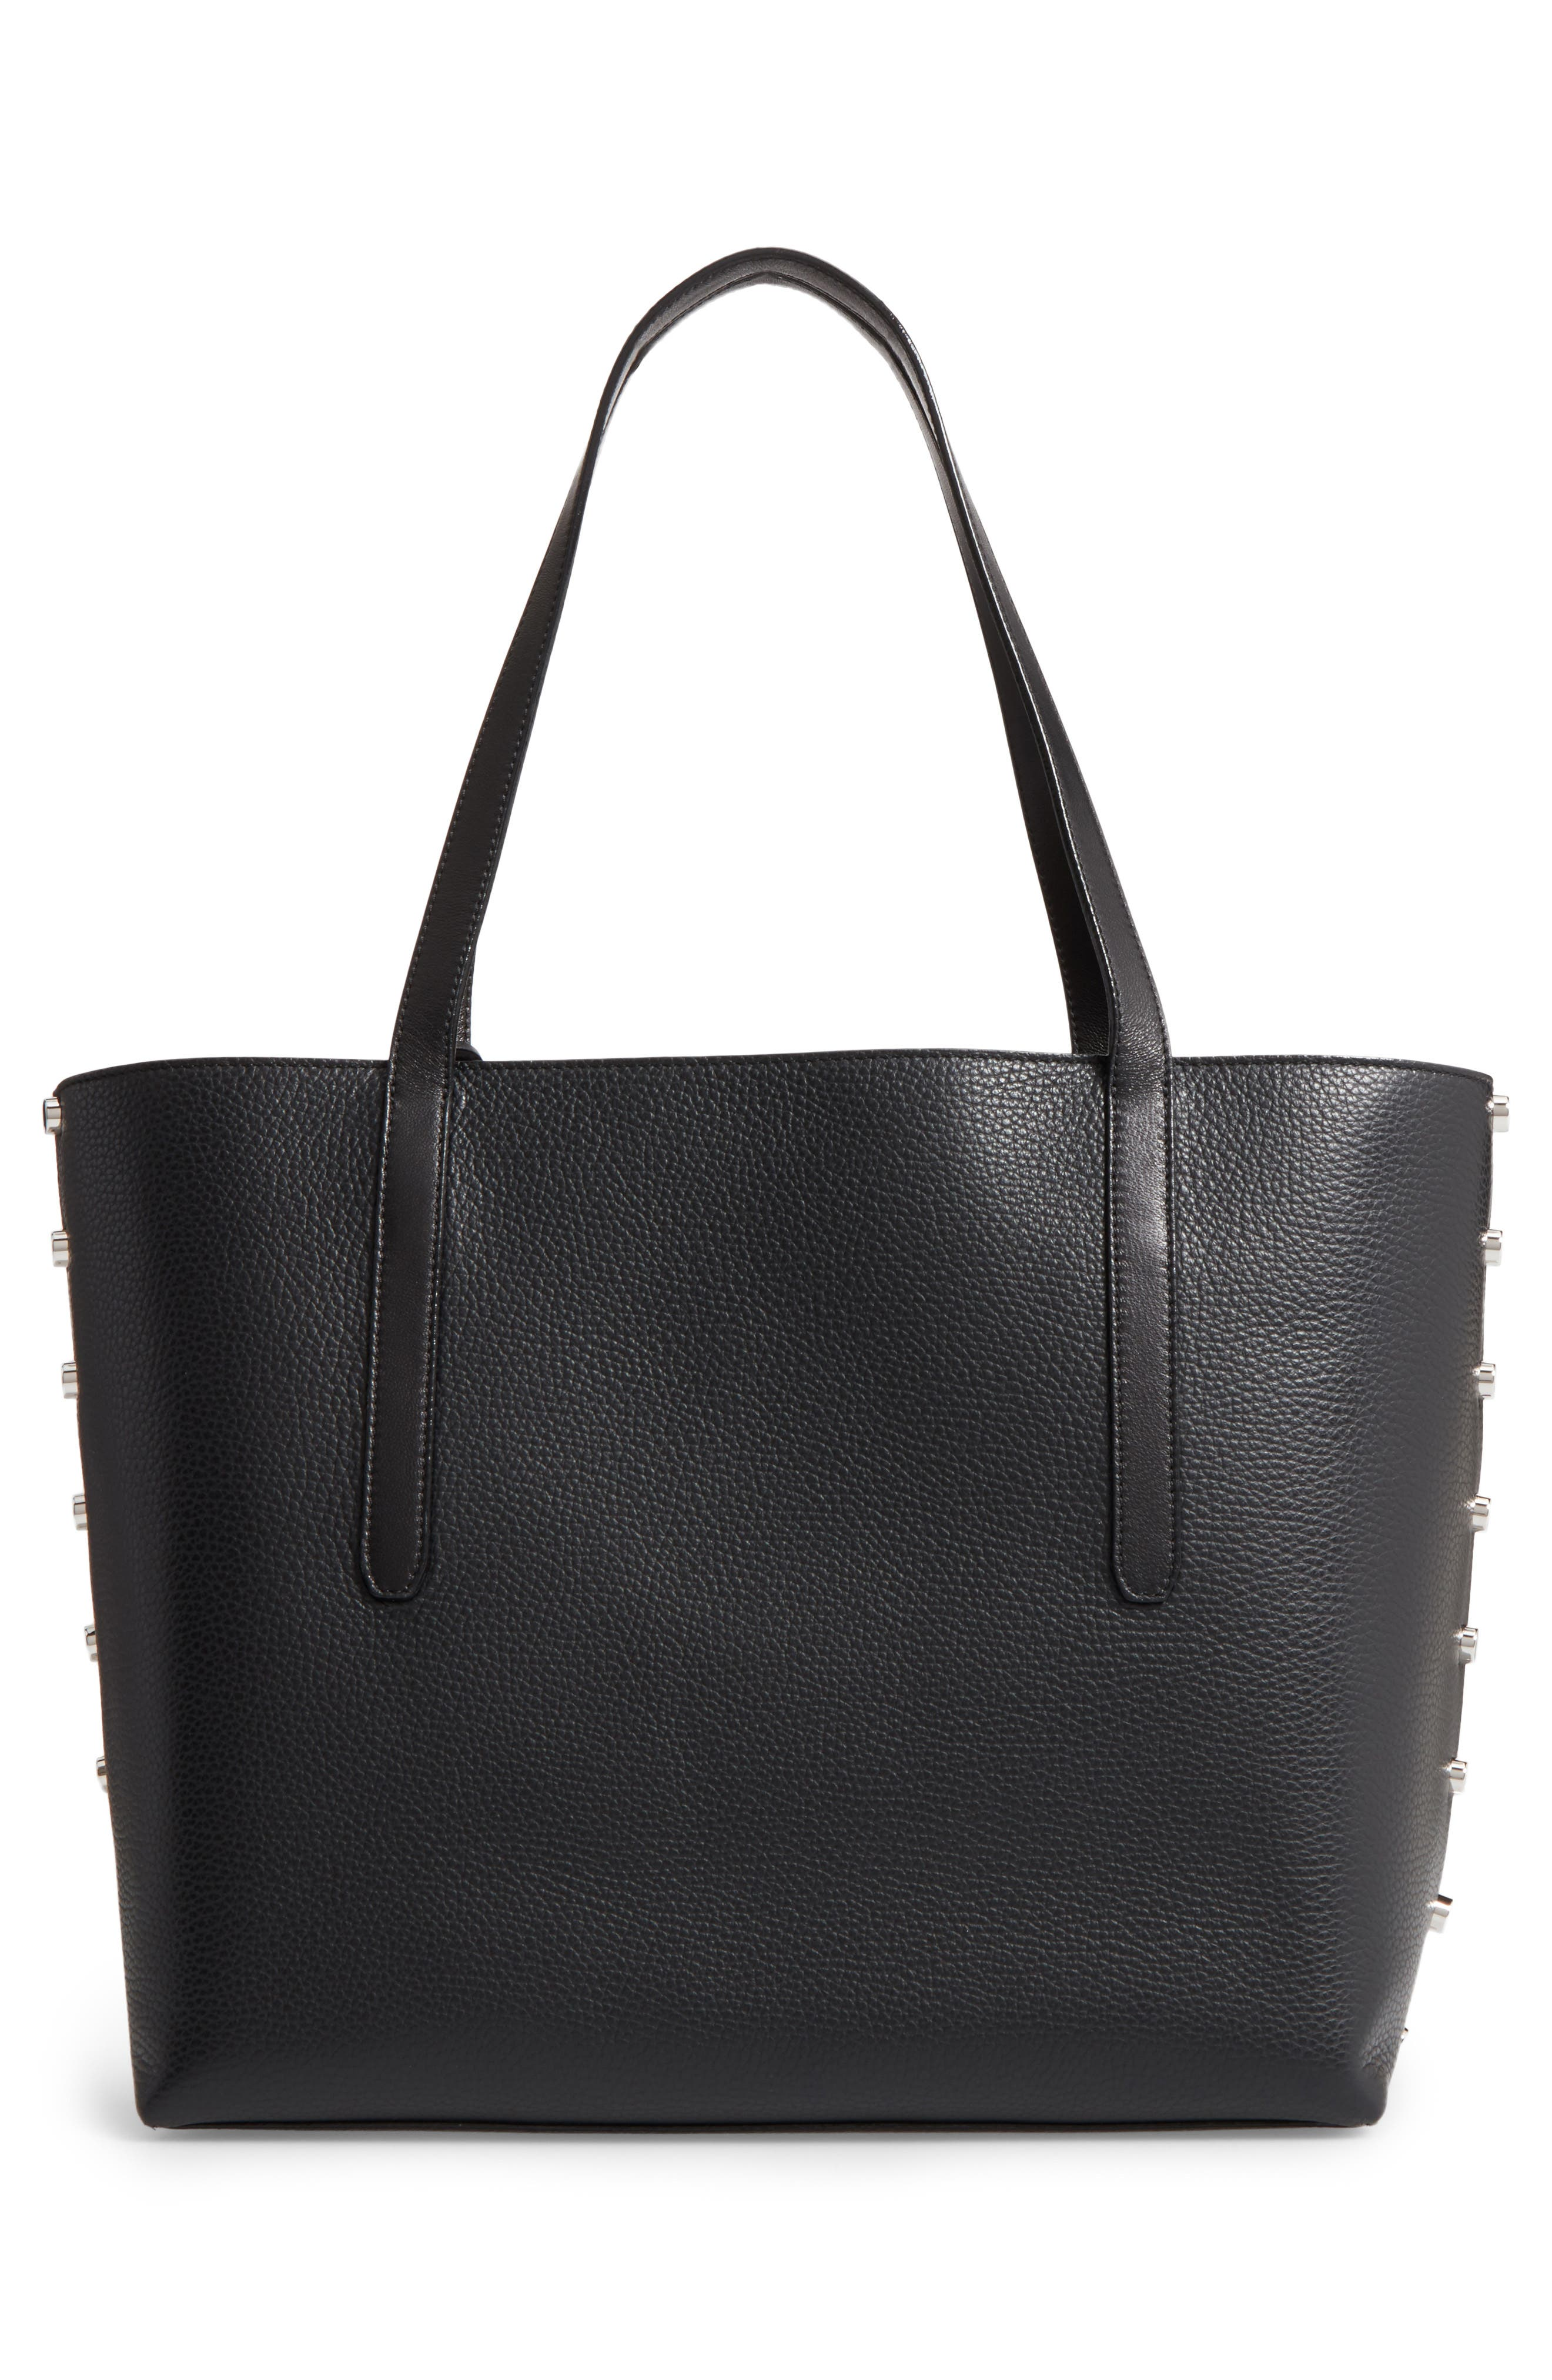 Twist East West Tote,                             Alternate thumbnail 3, color,